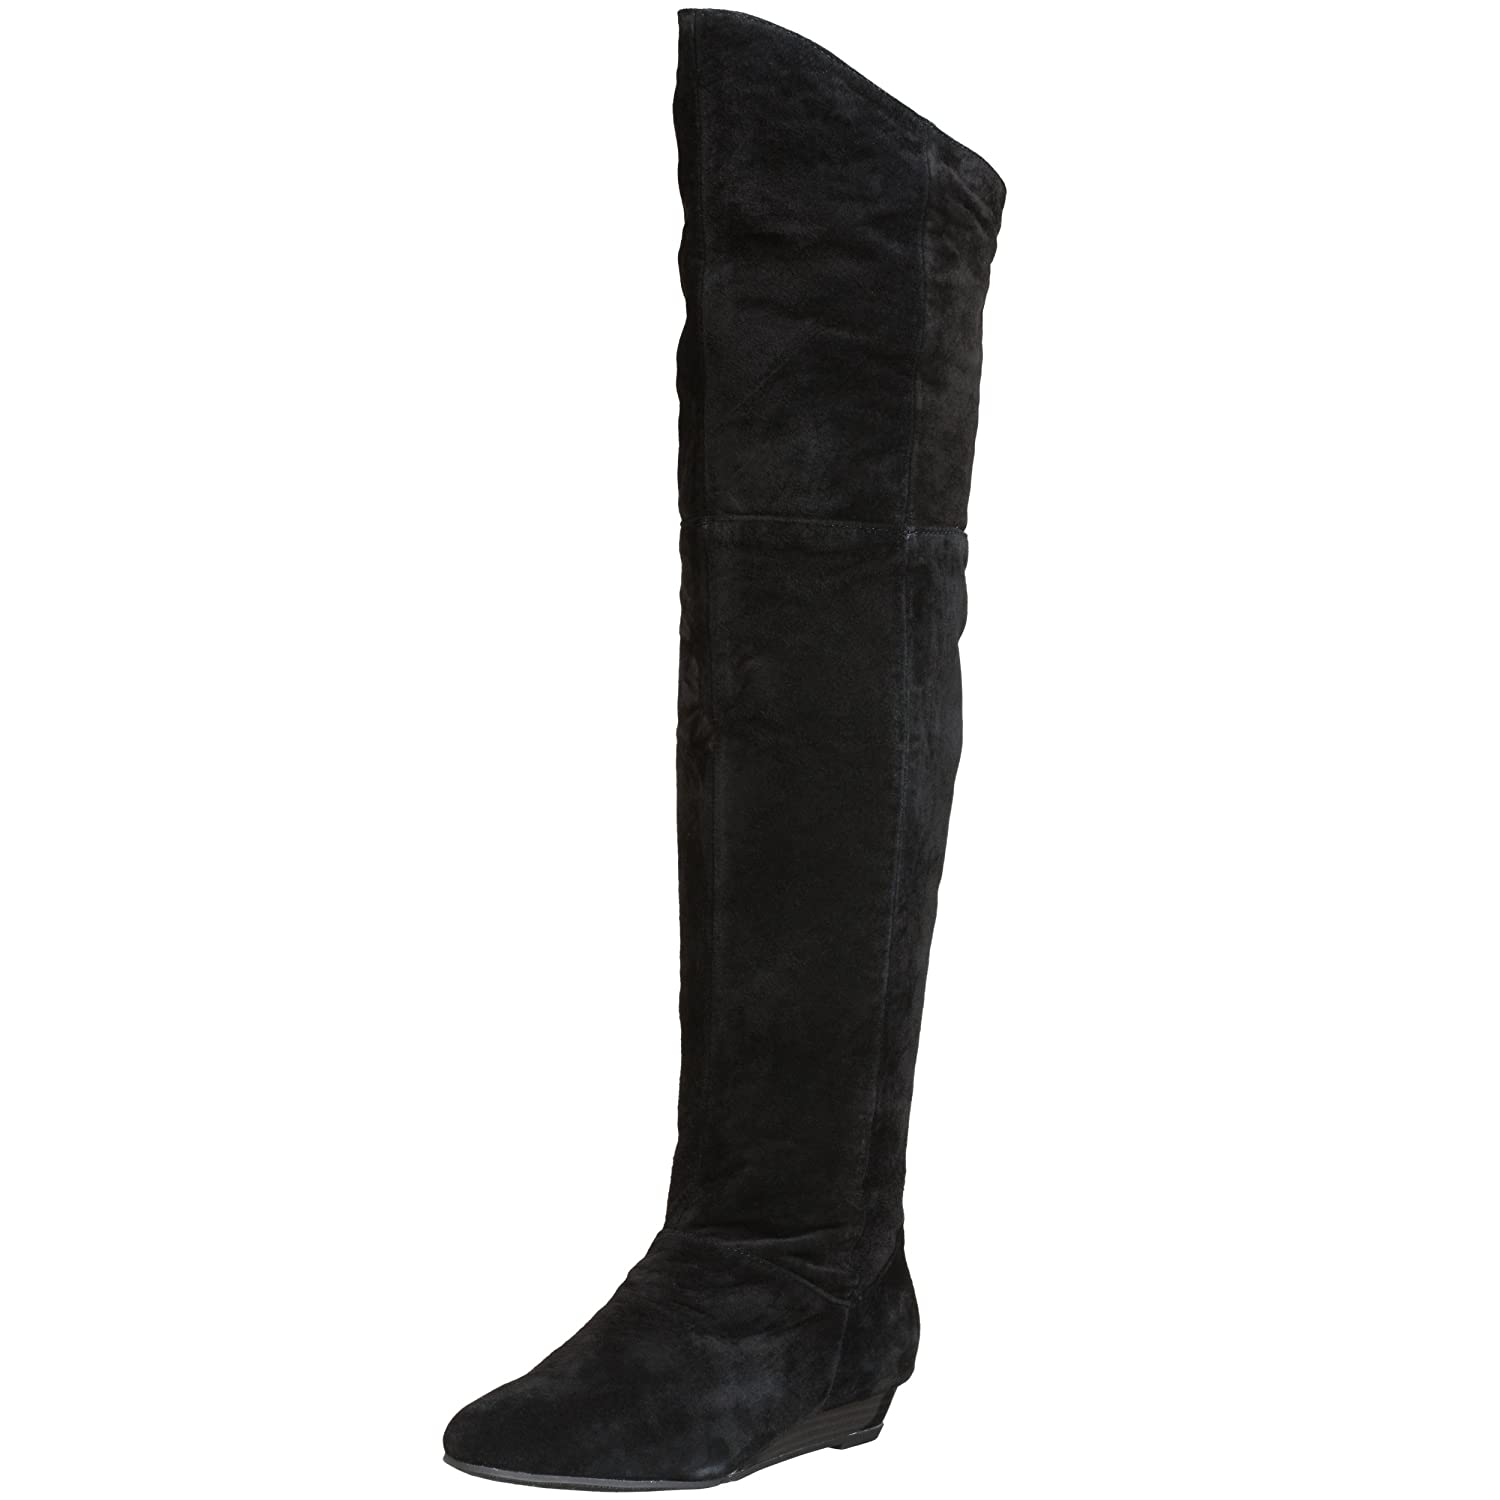 Chinese Laundry Women's Turbo Suede Wedge Boot - Free Overnight Shipping & Return Shipping: Endless.com